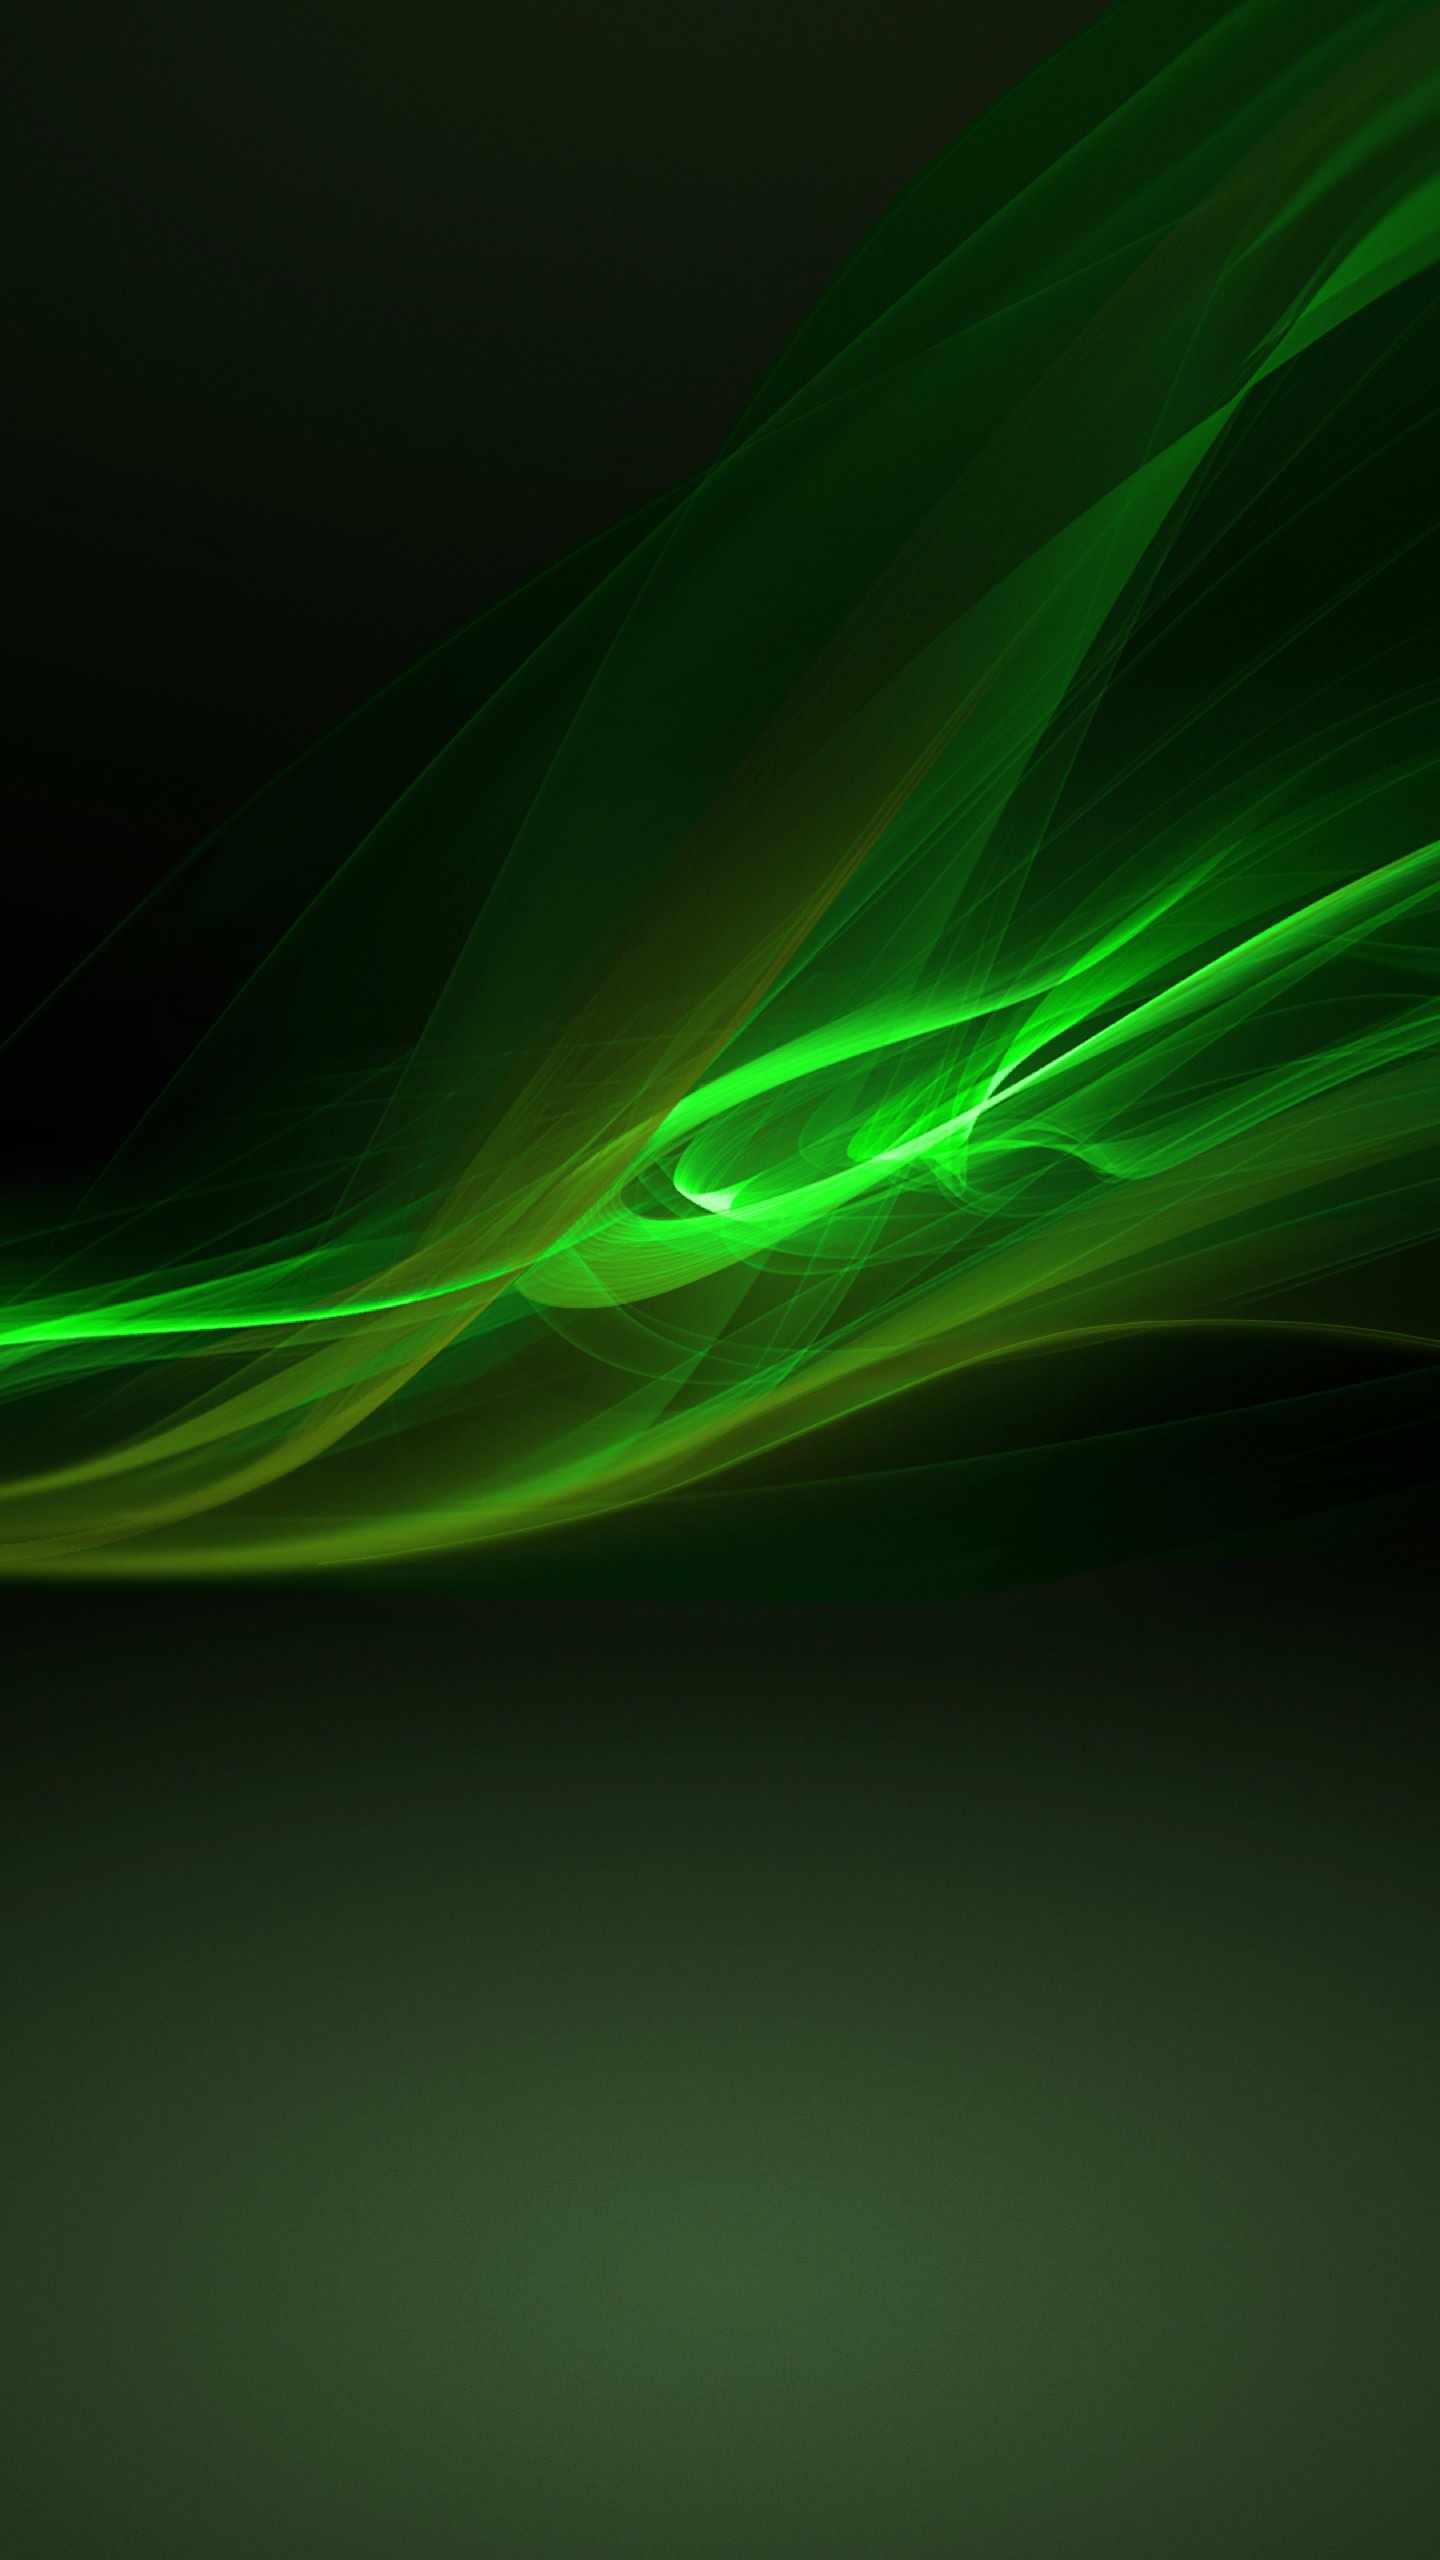 Green leaf wallpaper smartphone green cool android smartphone wallpaper voltagebd Choice Image